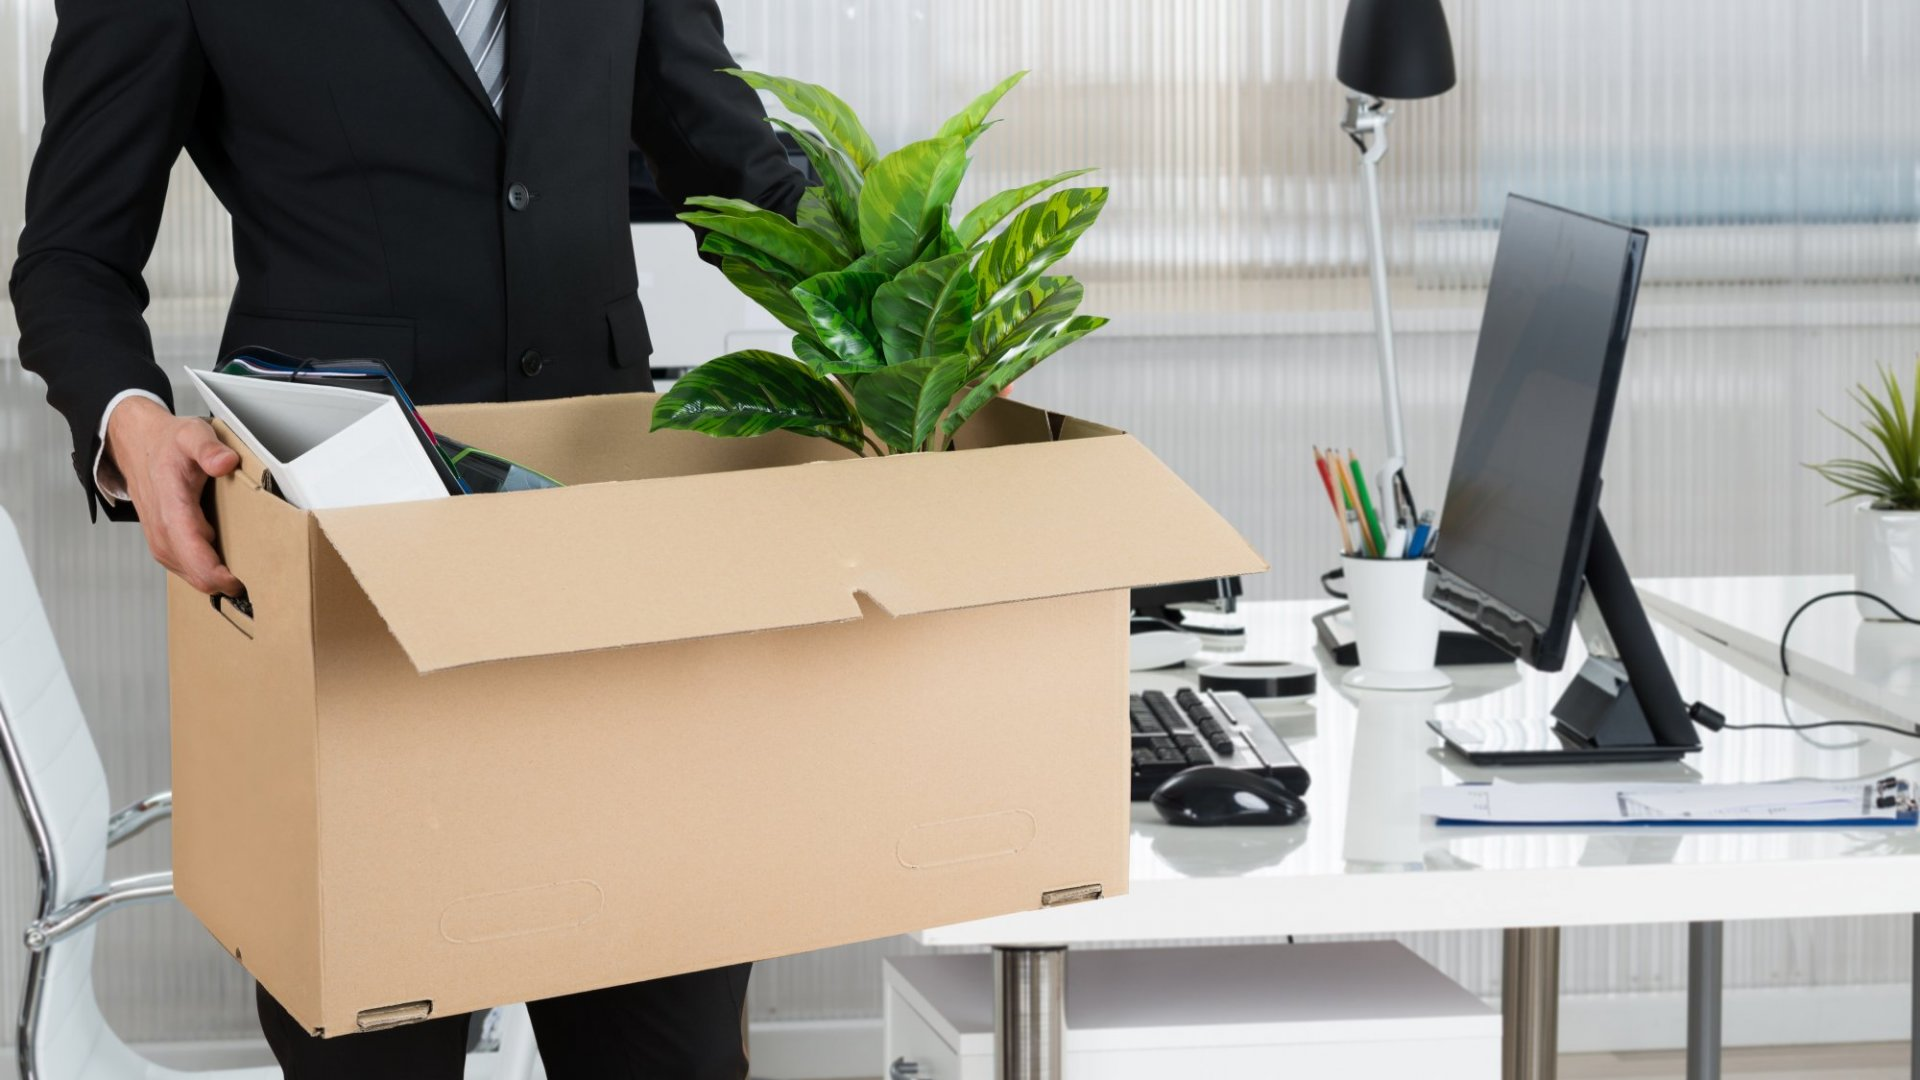 6 Positive Ways to Deal With an Employee's Resignation